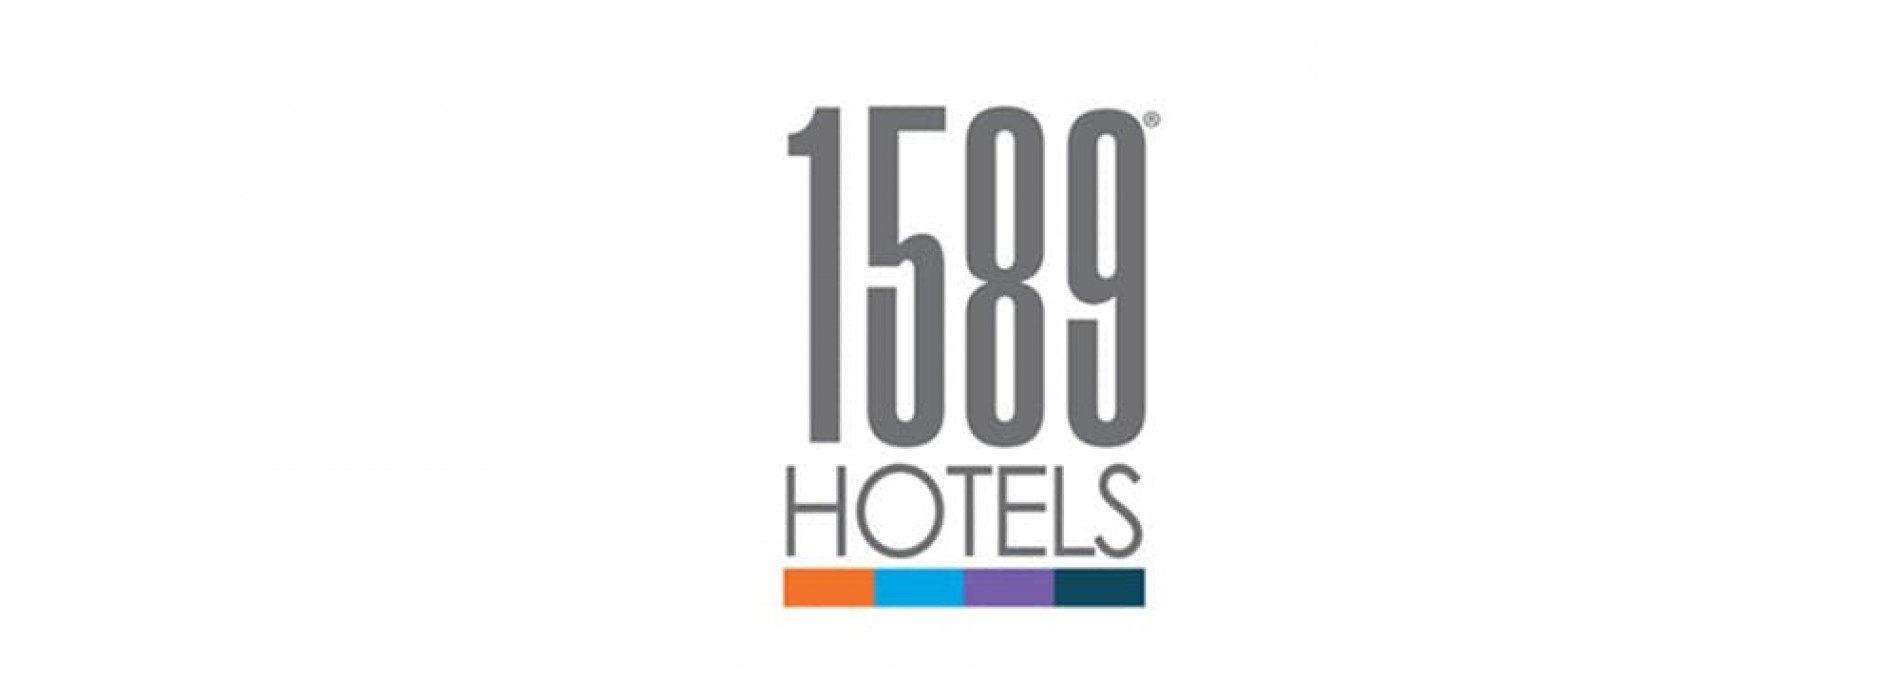 1589 Hotels added 16 properties to its portfolio from April 2017 to March 2018